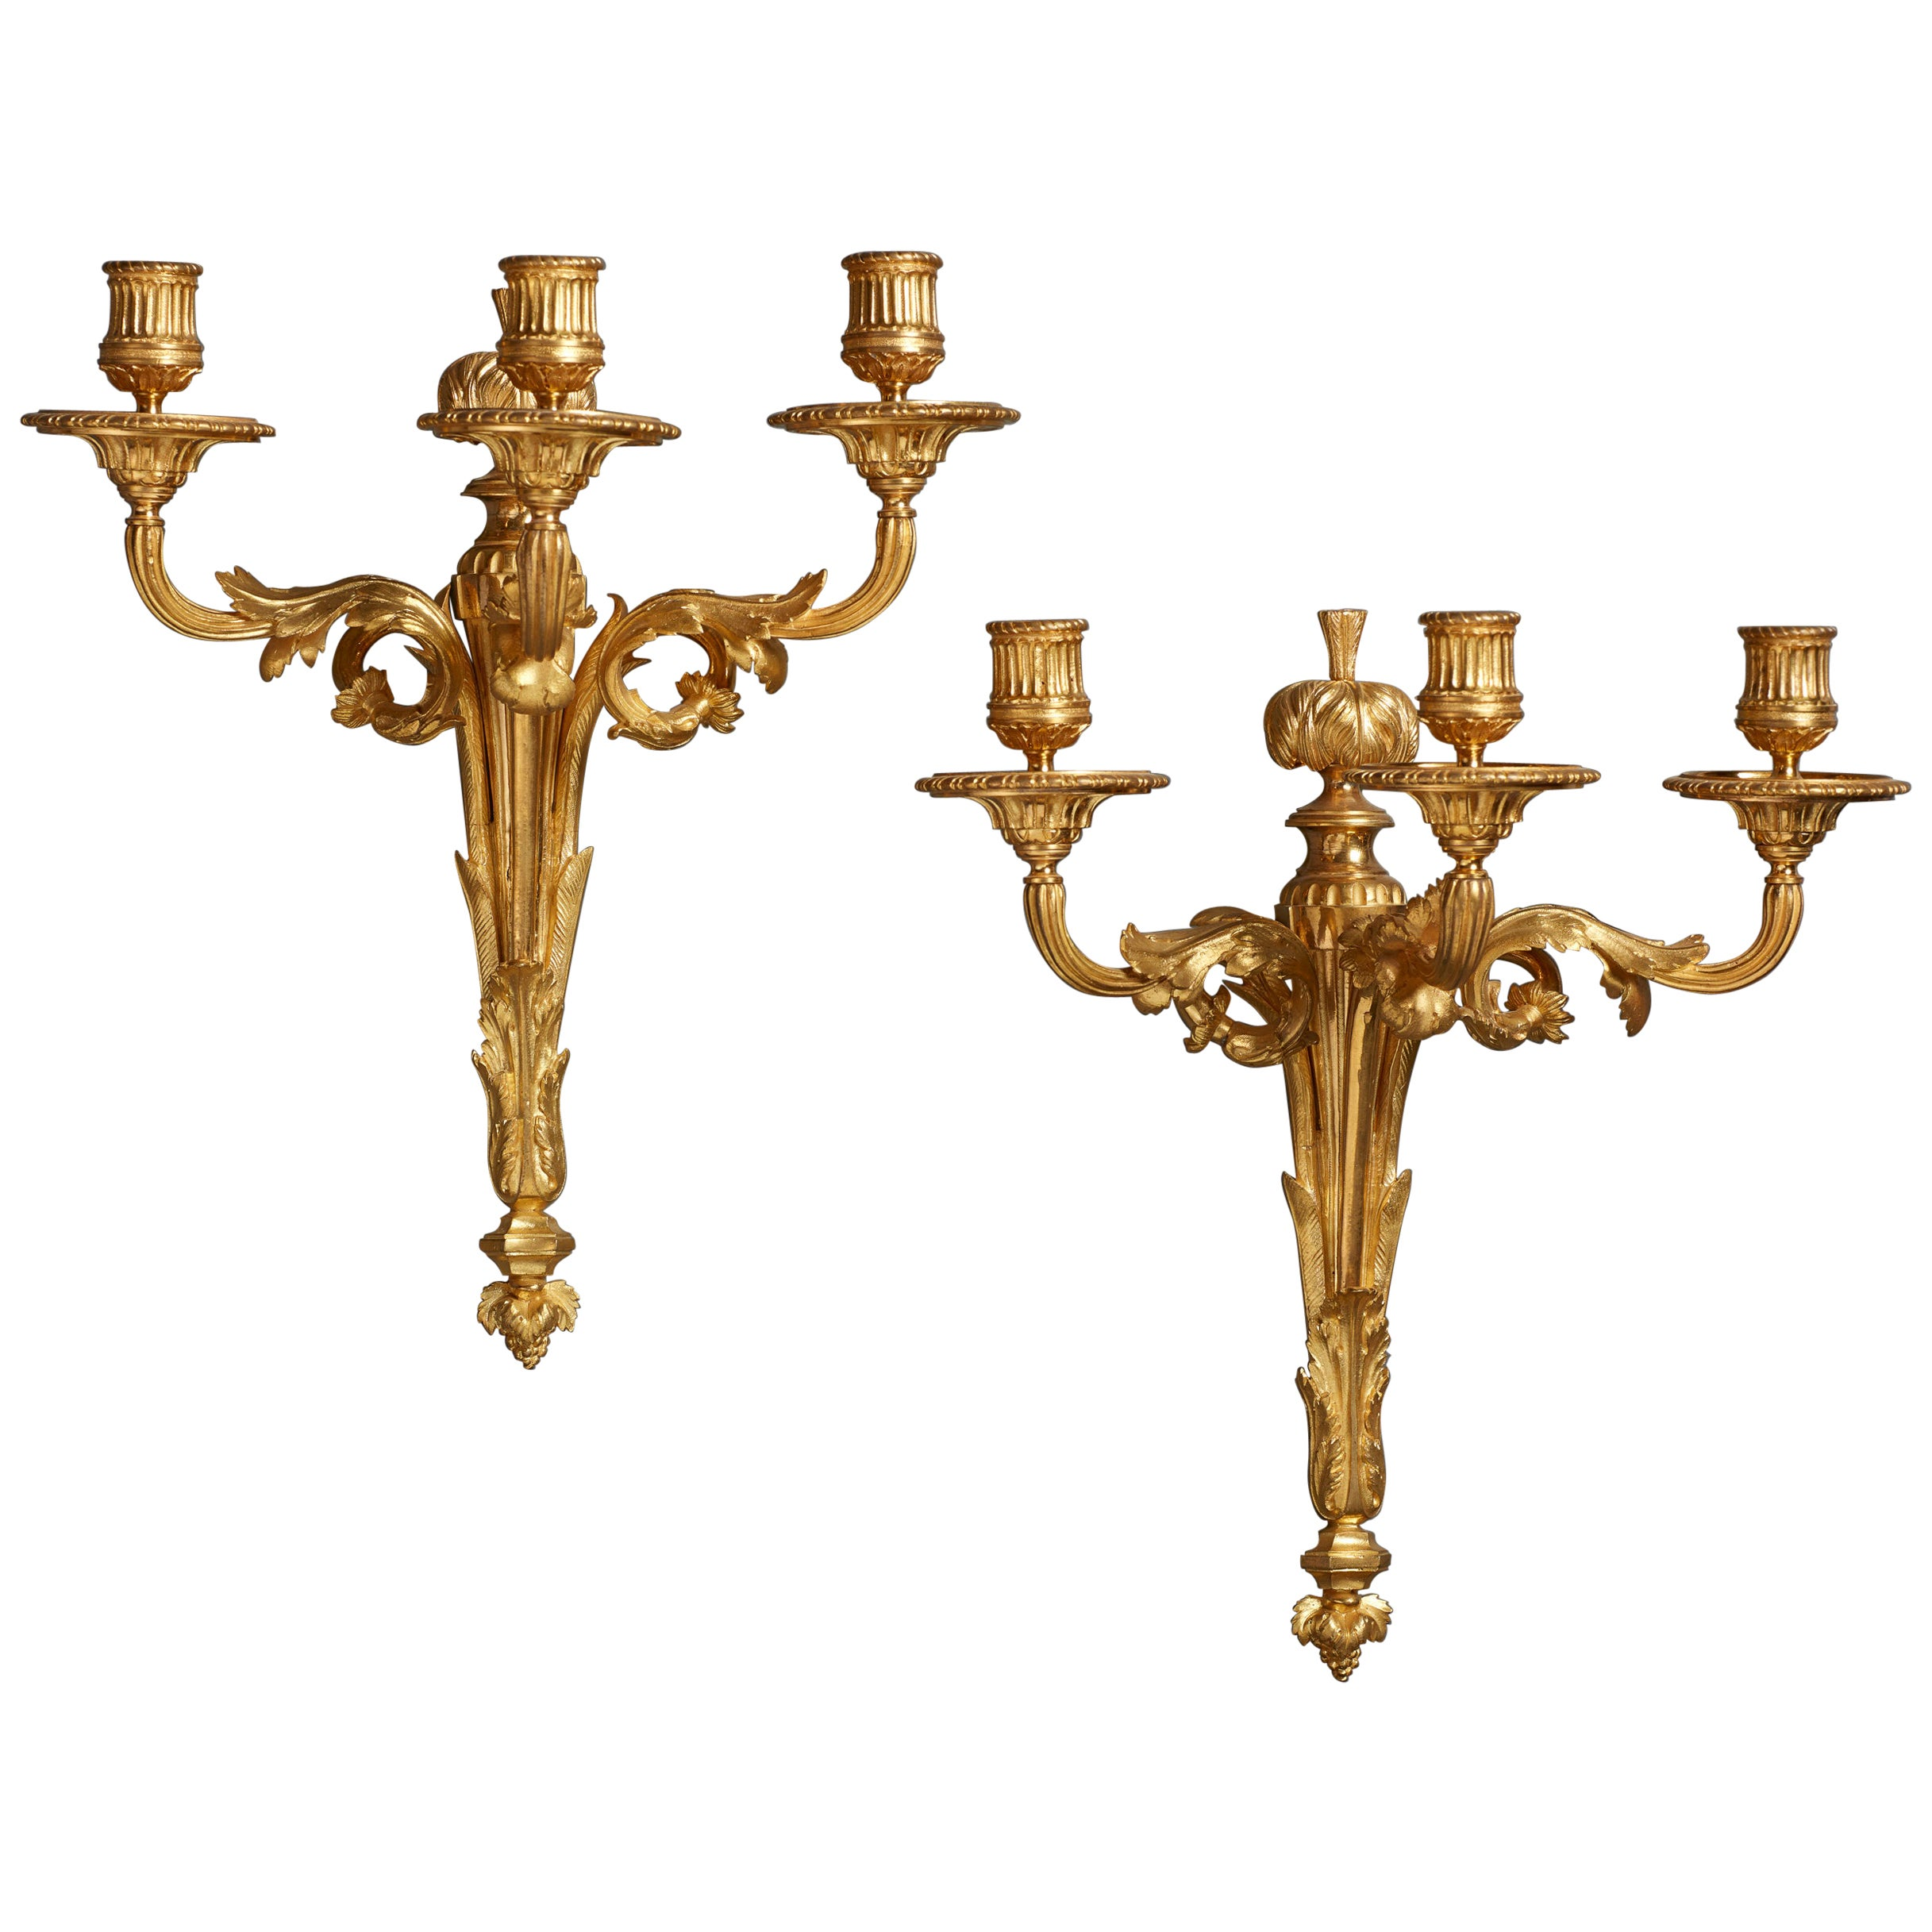 Pair of 18th Century French Ormolu Three-Branch Wall Sconces